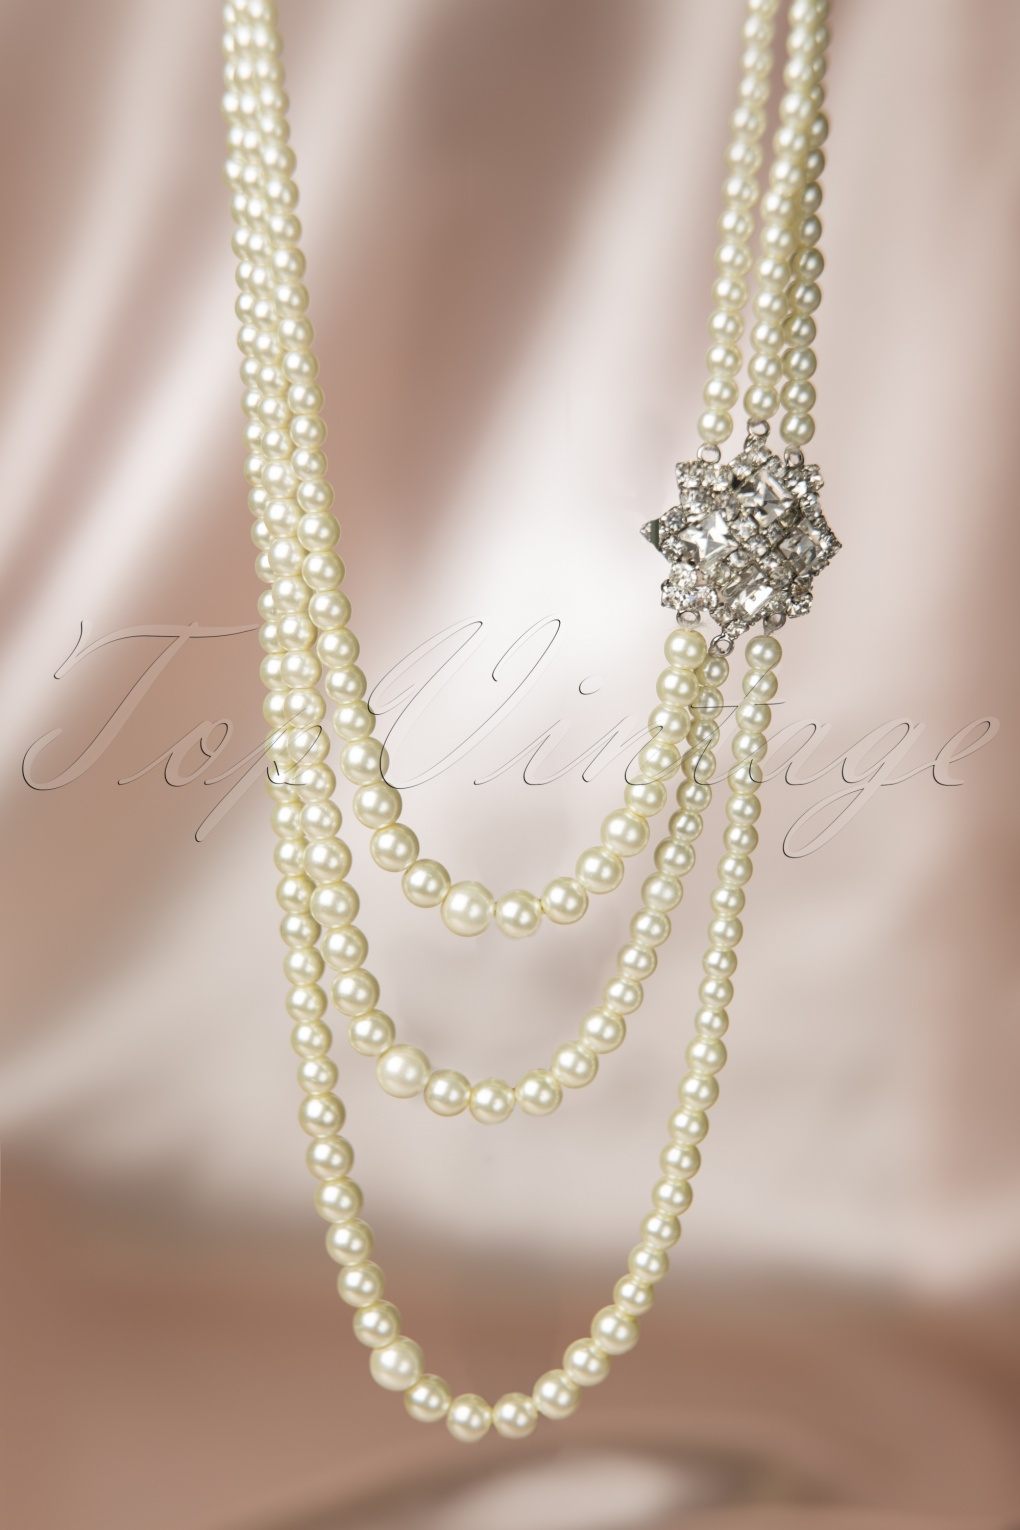 1950s Jewelry Styles and History 20s Paris Pearls Crystal Necklace £57.82 AT vintagedancer.com